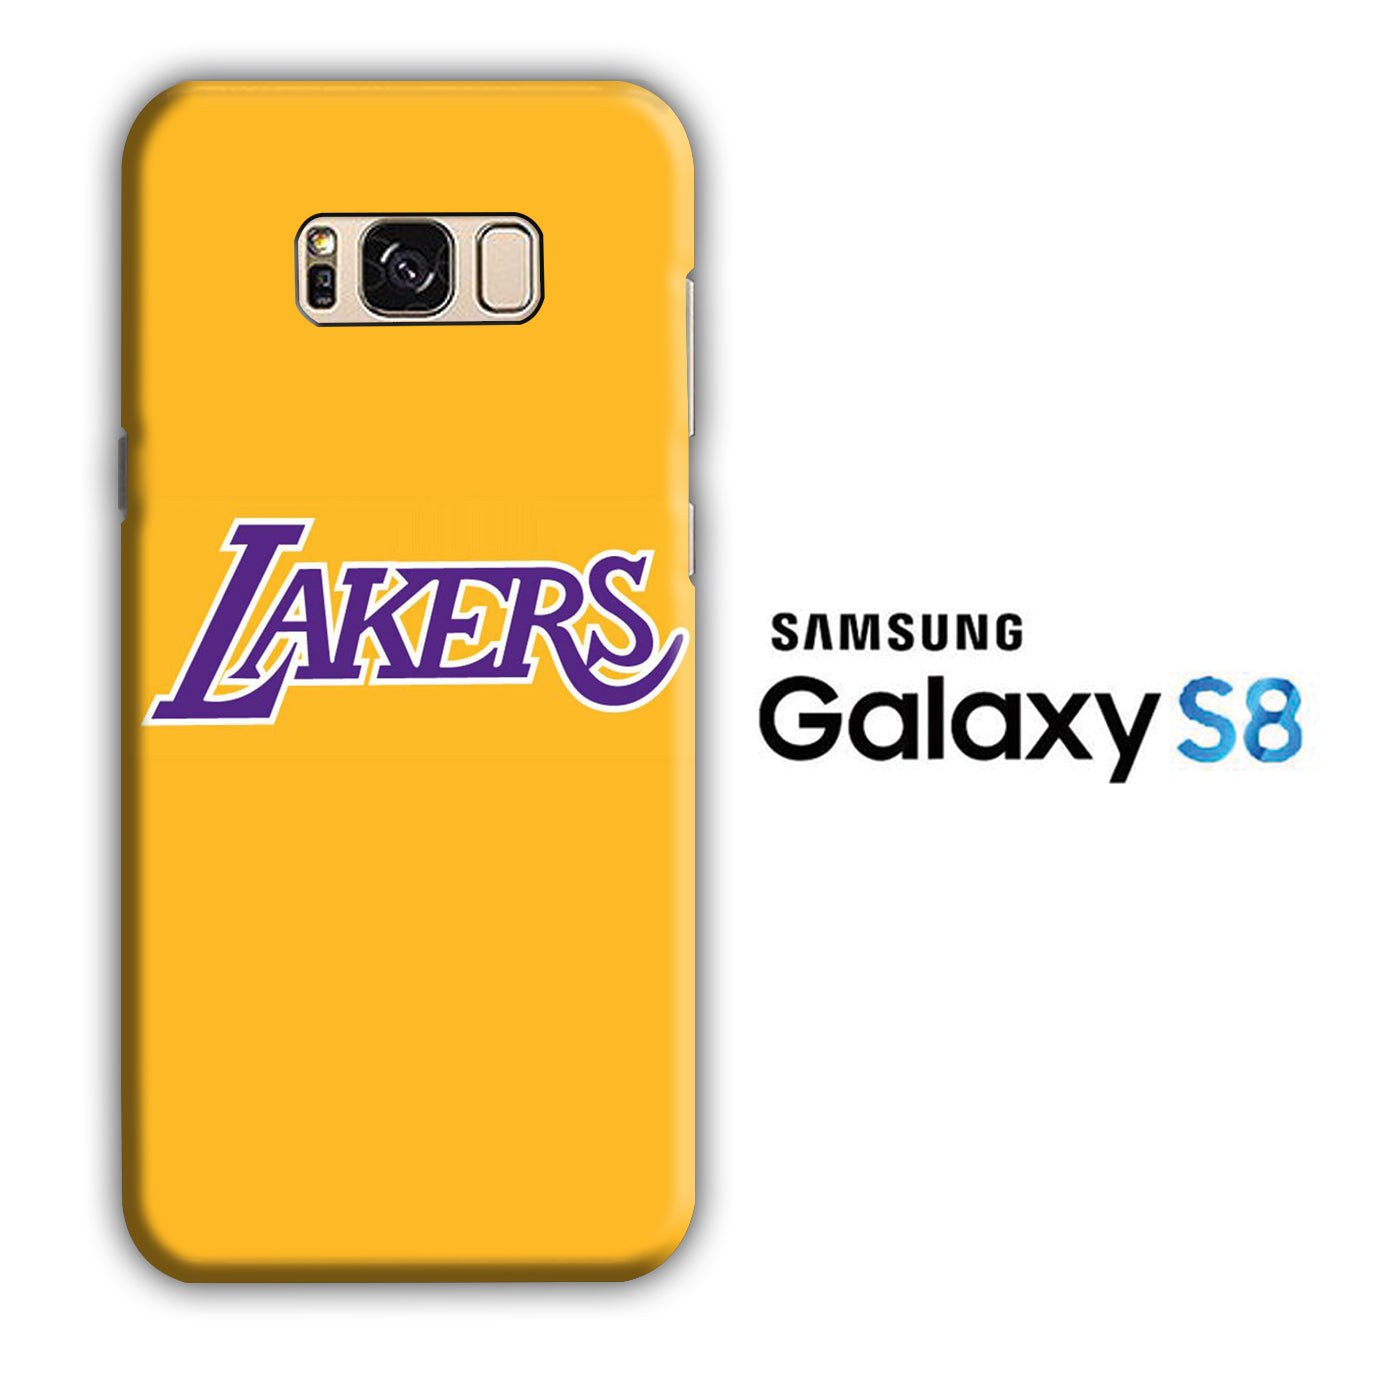 NBA Lakers Yellow Simple Samsung Galaxy S8 3D Case